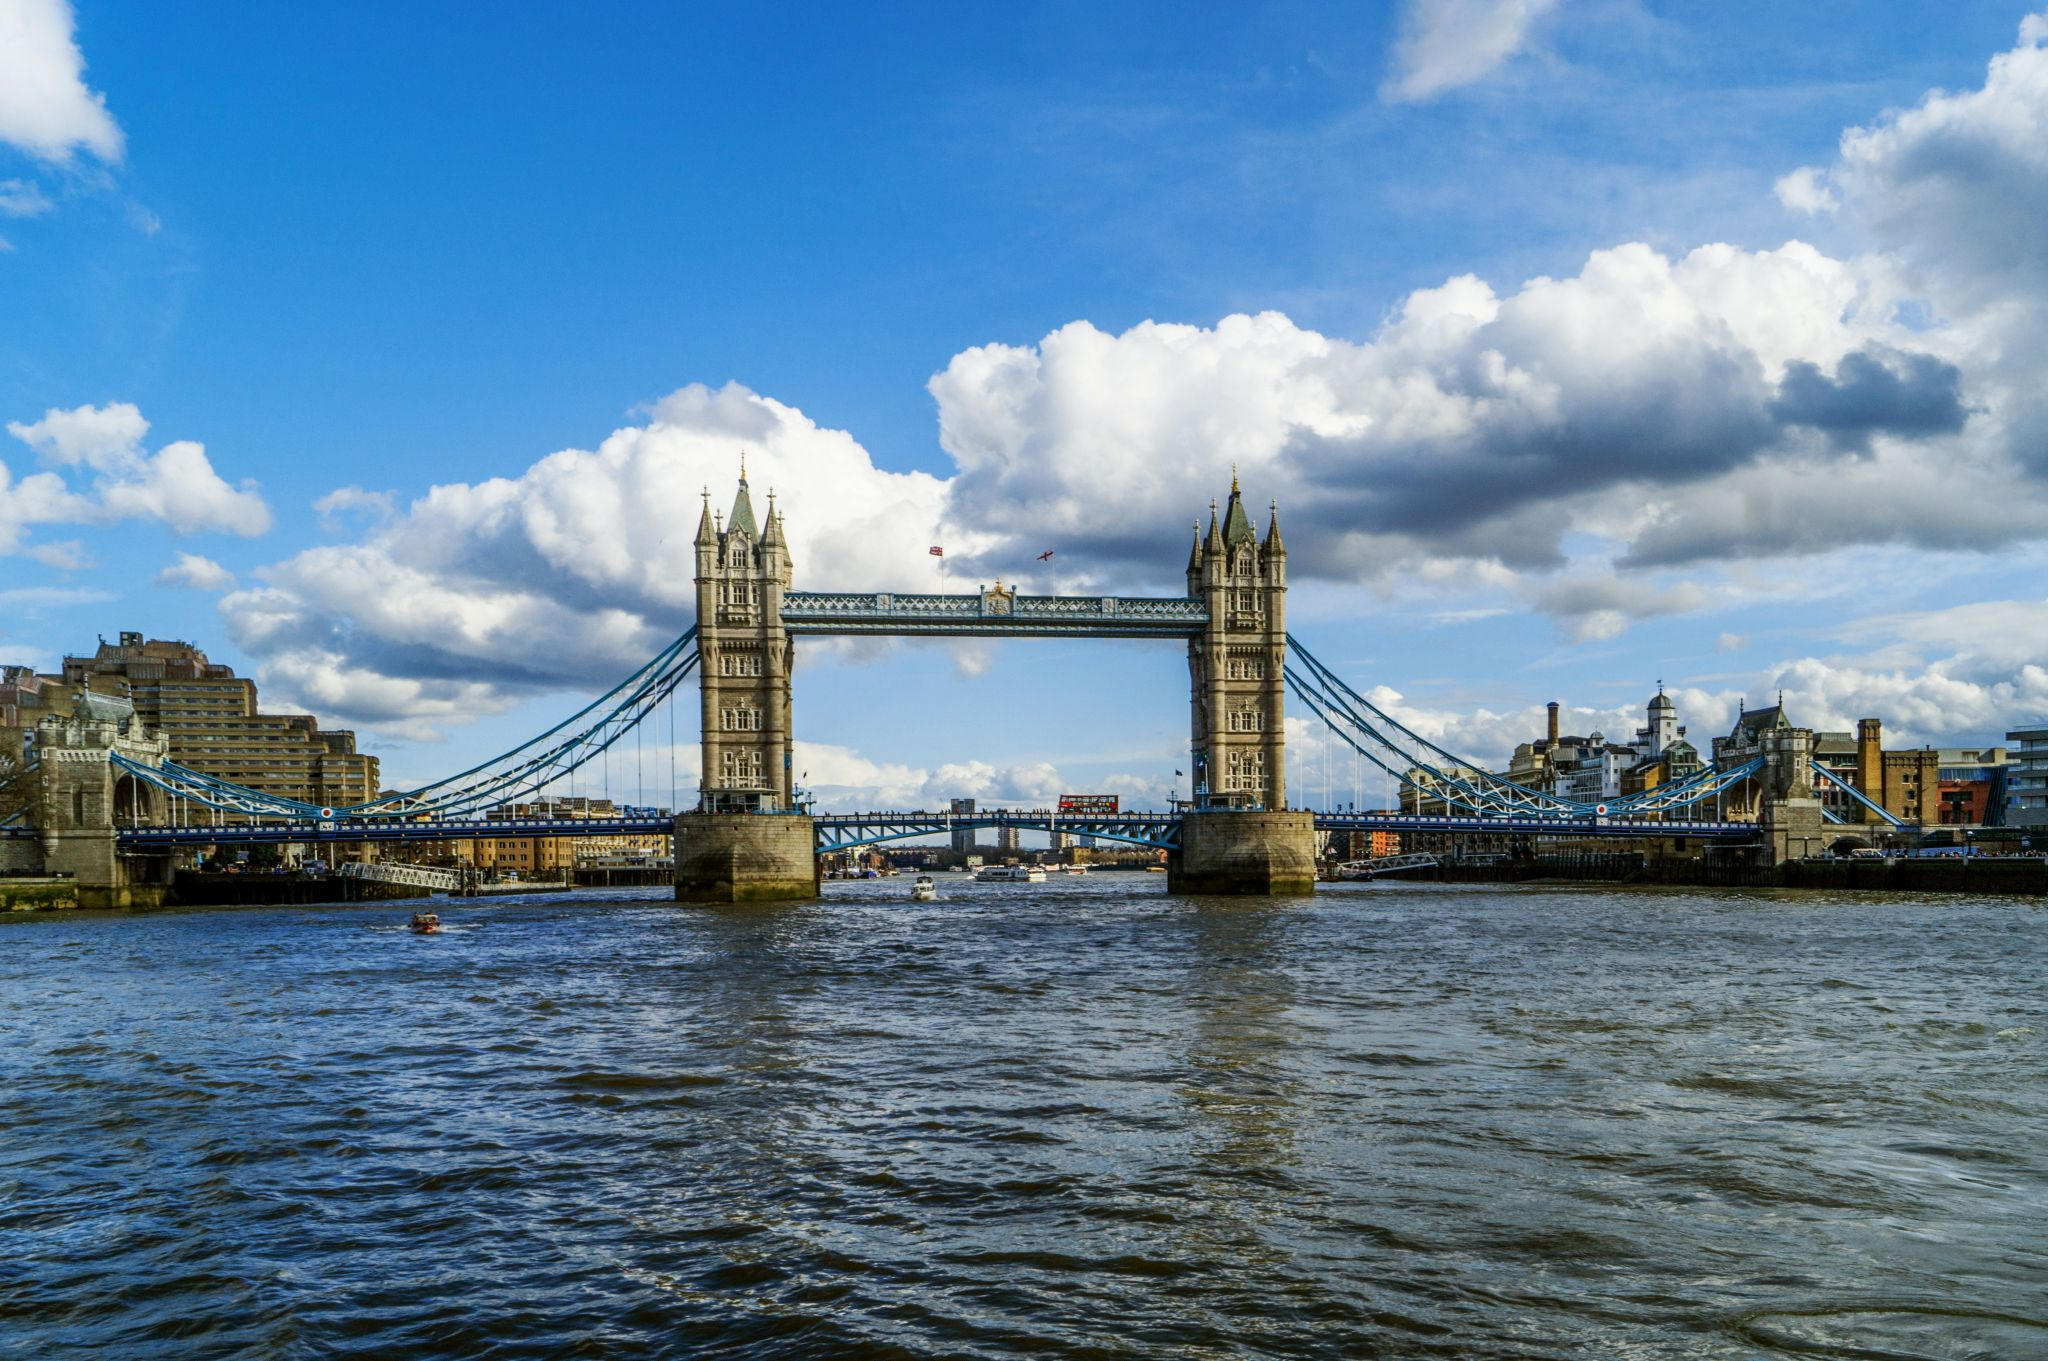 Tower and Tower Bridge, view from a boat, United Kingdom